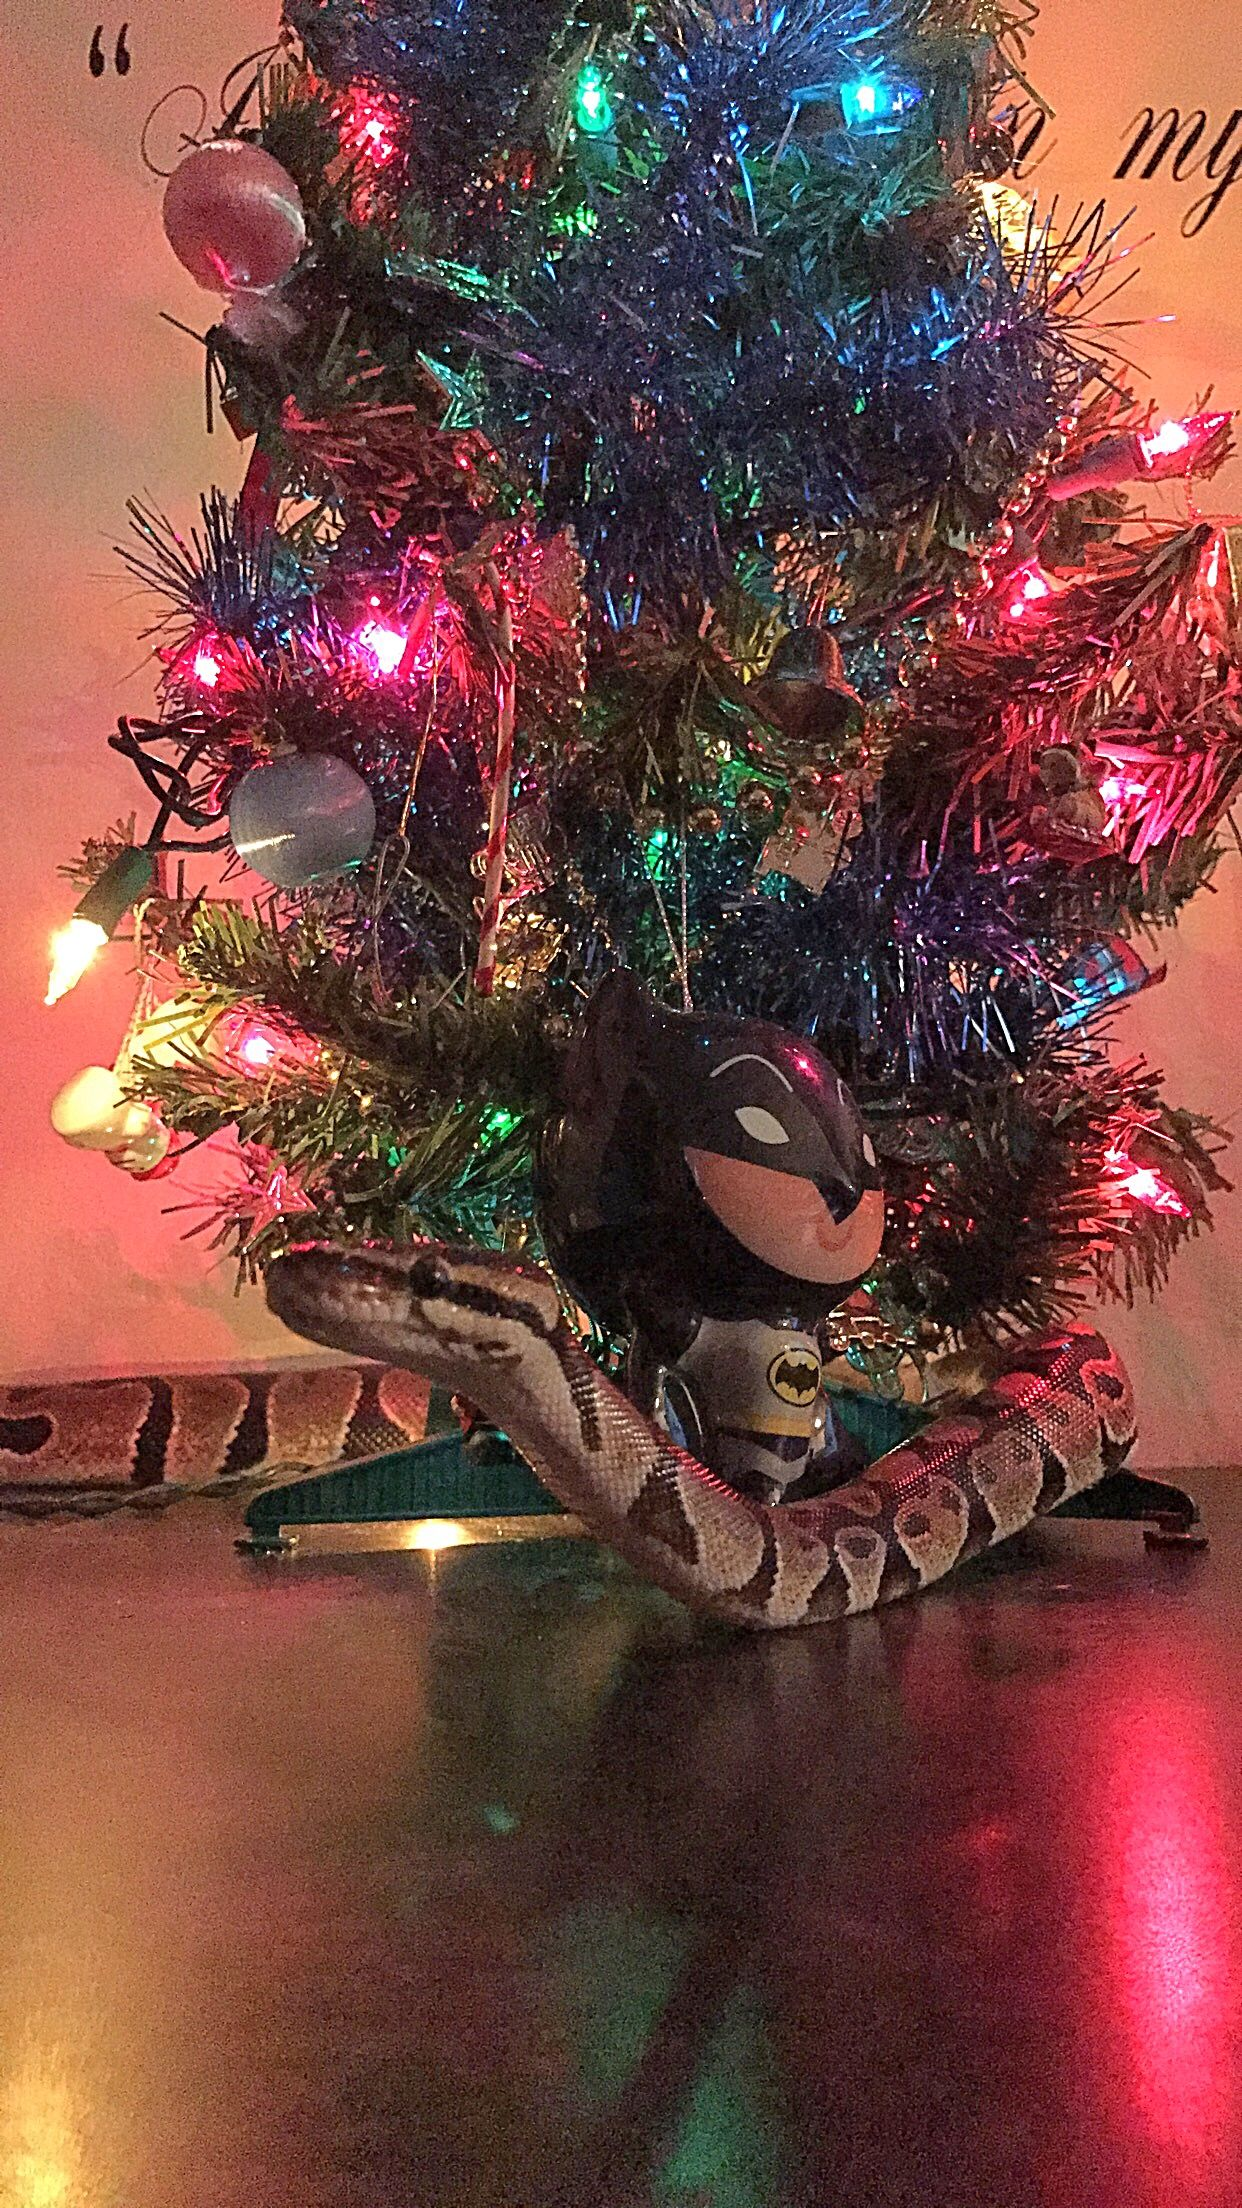 Pin by Elizabeth Breslin on Ball Python Christmas | Pinterest | Ball ...